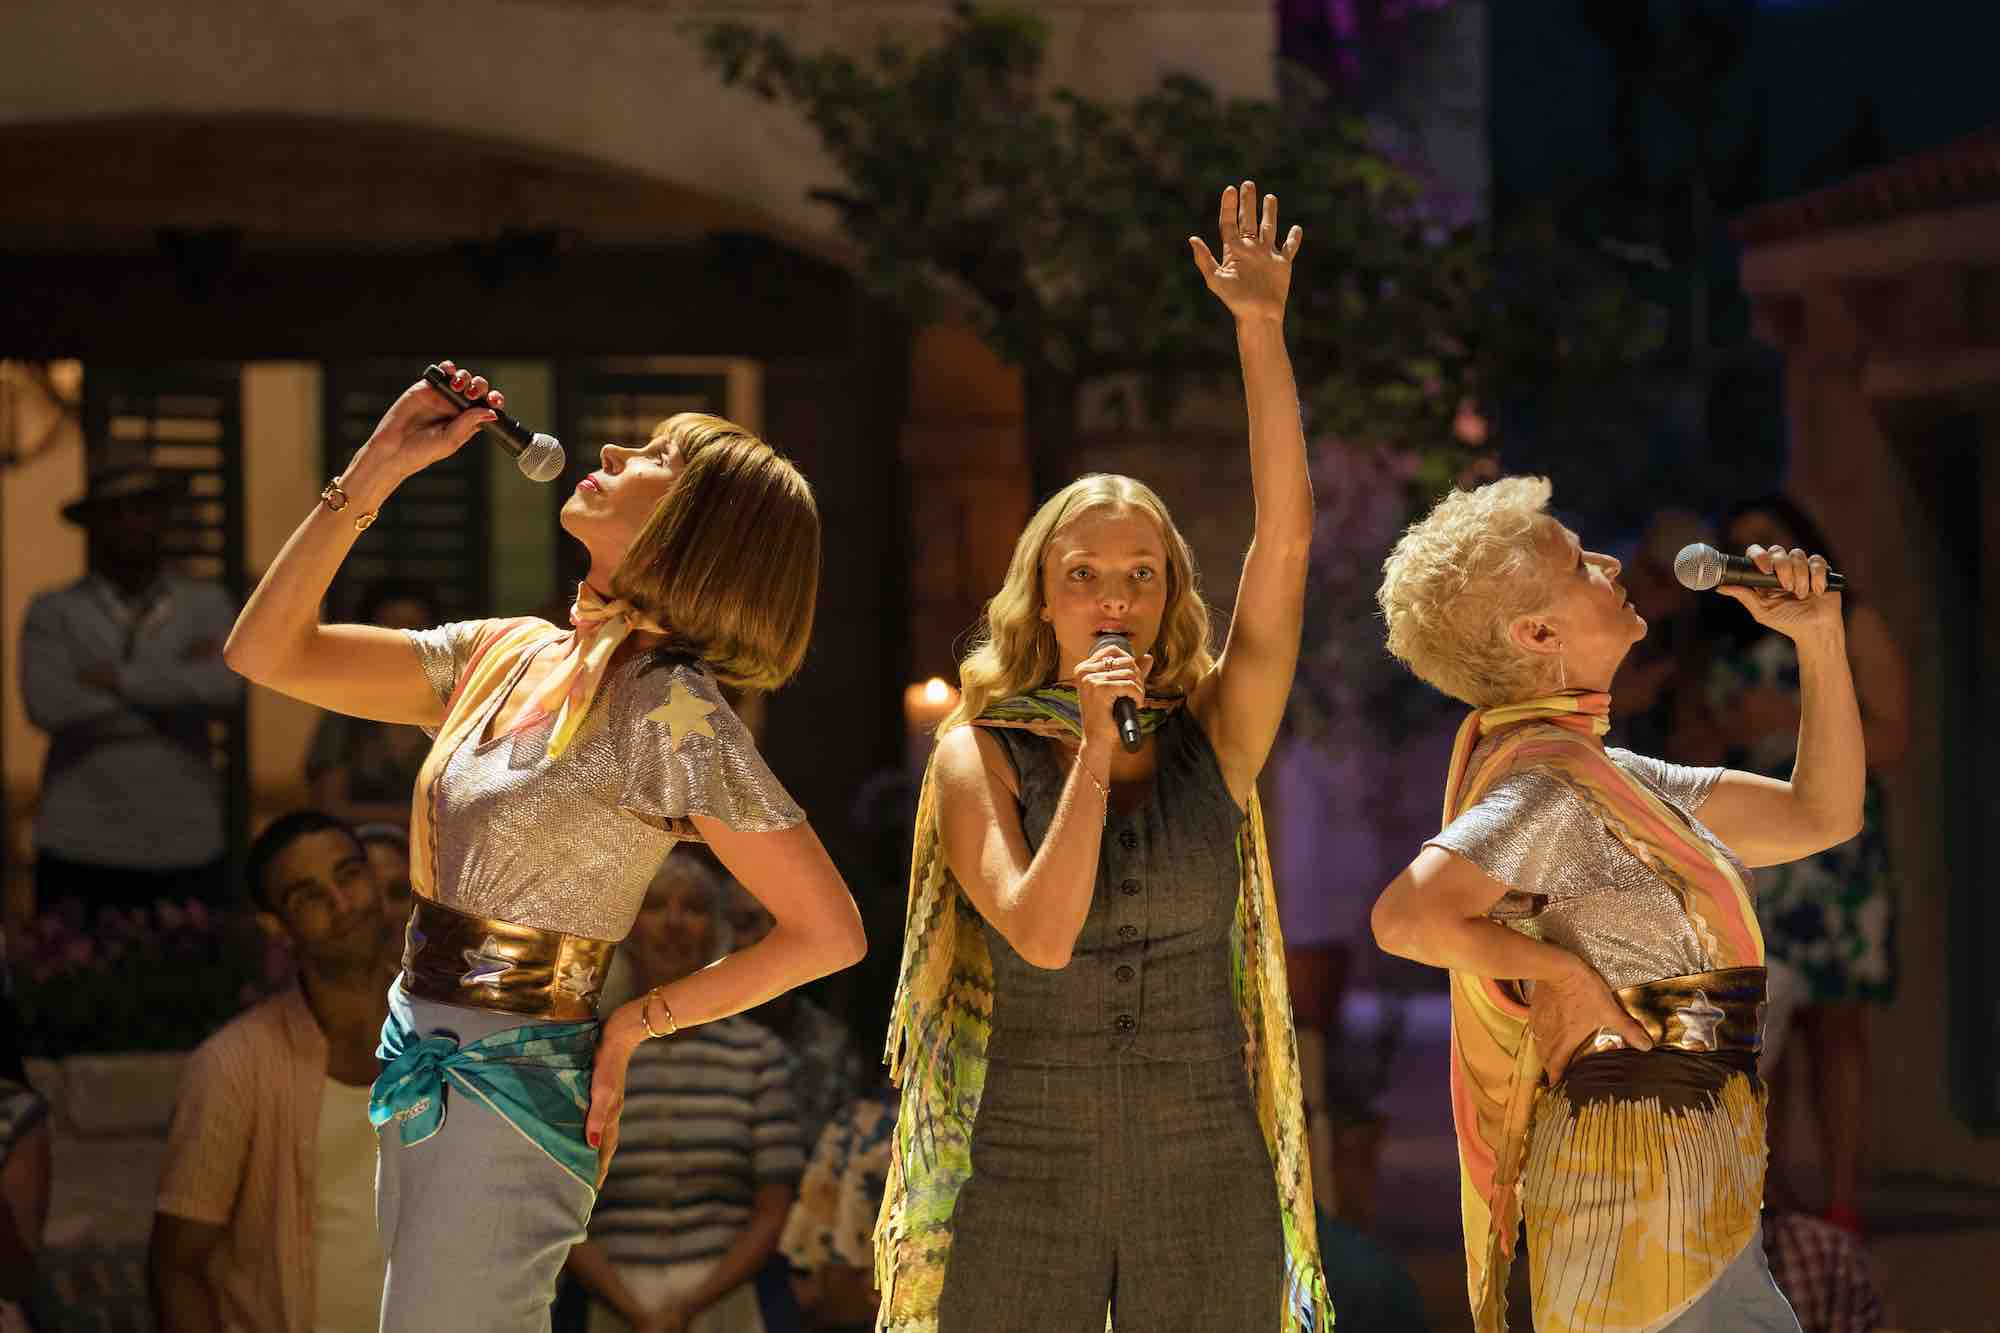 Mamma Mia! Here We Go Again - Final Trailer